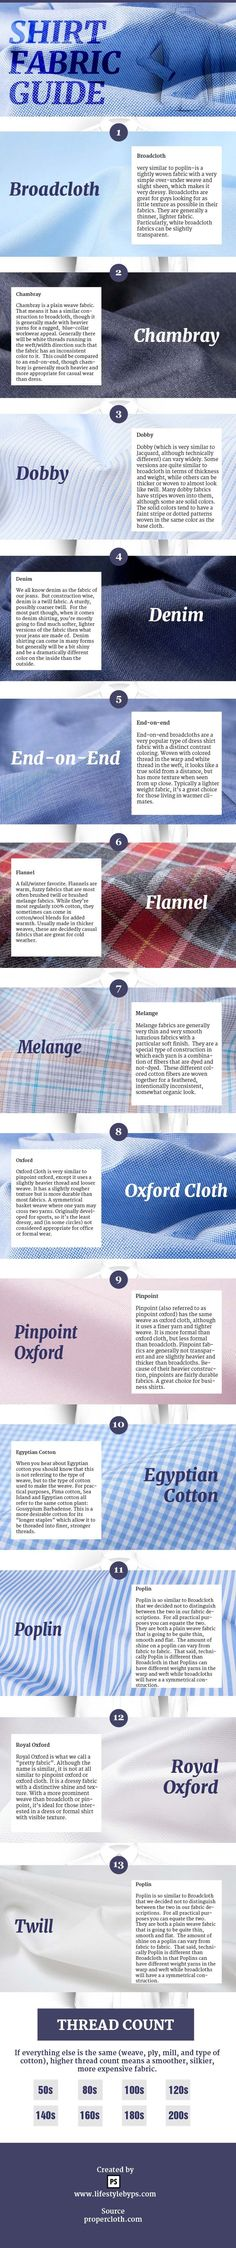 TwitterFacebookWhatsAppGoogle+LinkedInDiscover new TIPS!  Discover new TIPS!  Published by: Lifestyle By PS Original source: here TIPS FOR: fashion, gentlemen's fashion, personal care and style Related posts 5 Tips to Know Your Tuxedo Inside Out Winter Sports Clothing Guide Tips to Check your Casual Look Style